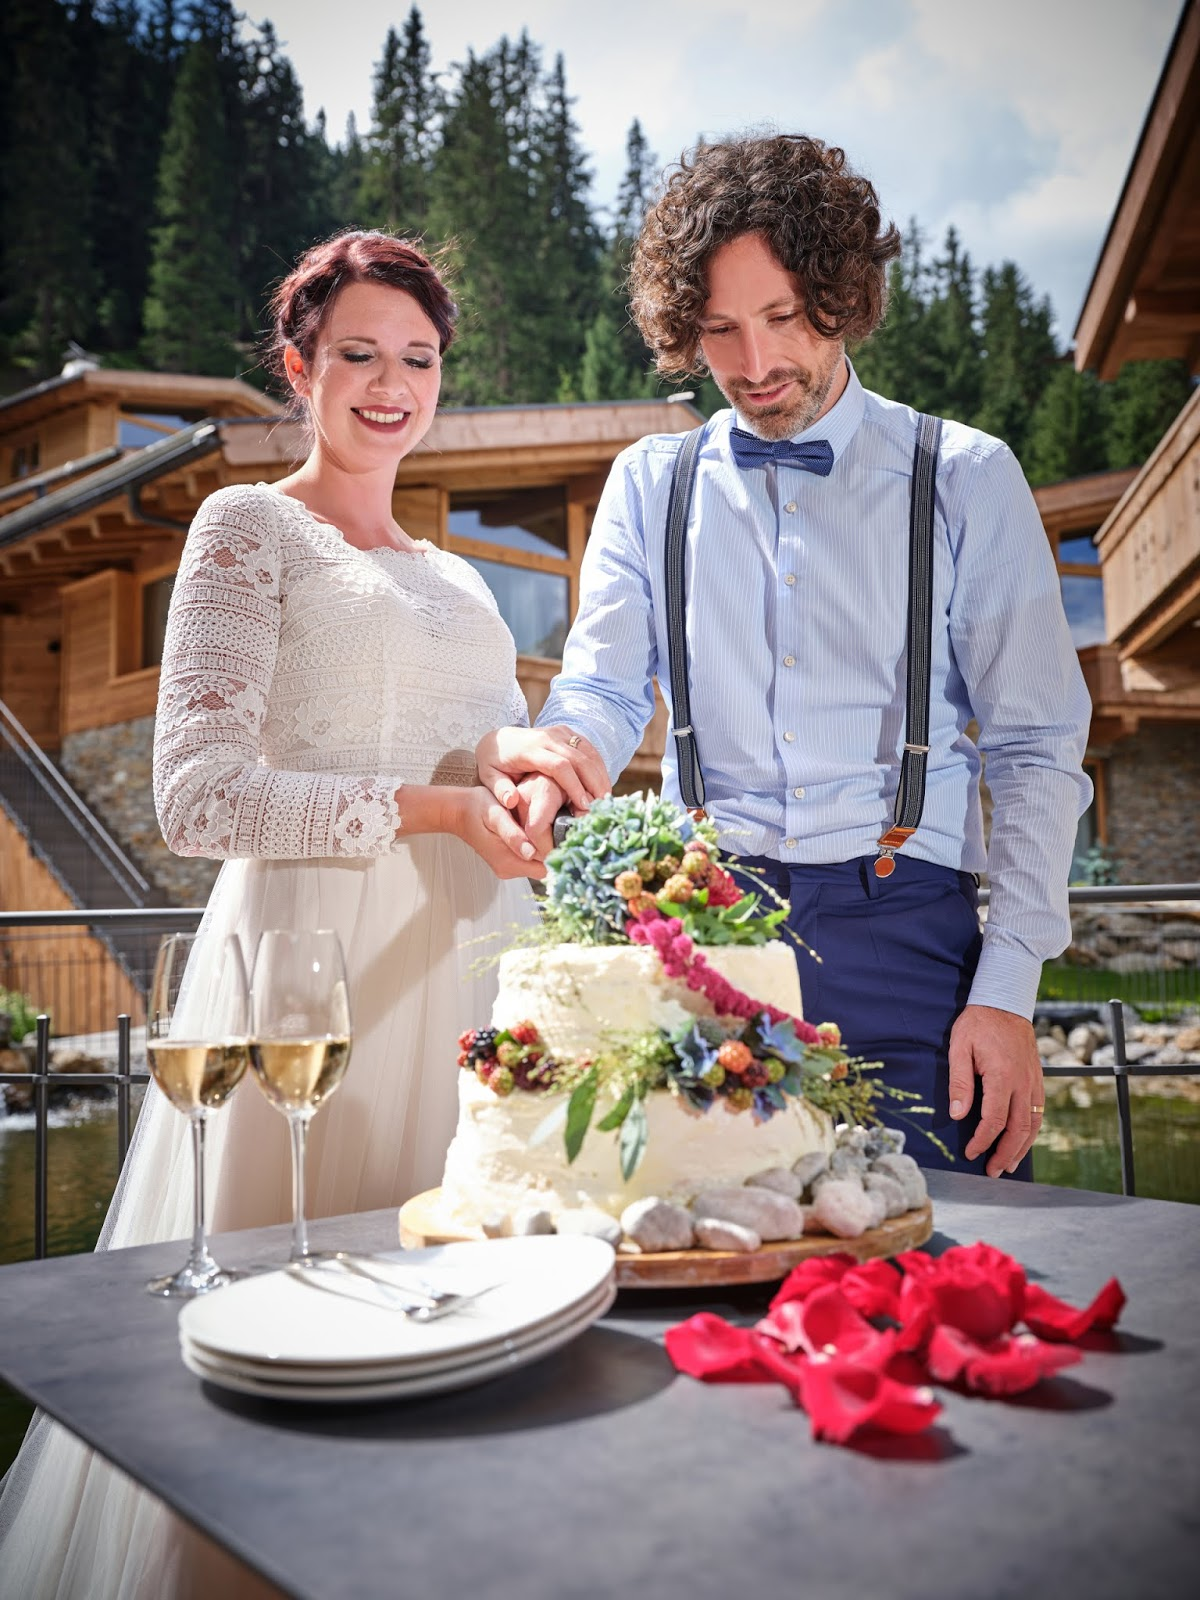 Hochzeitstorte, cutting the cake, Tortenanschnitt, Bergromantik, romantische Berghochzeit, Boho Mountain Wedding, Hochzeitscocktail, Berghochzeit in Tirol, Mountain wedding, Pure Resort Pitztal, Fotograf Marc Gilsdorf Alpenwedding, Hochzeitsplaneragentur 4 weddings & events, Uschi Glas, Styled Shooting, Destination Wedding Austria, Braut und Bräutigam Shooting, heiraten in den Bergen, visittirol